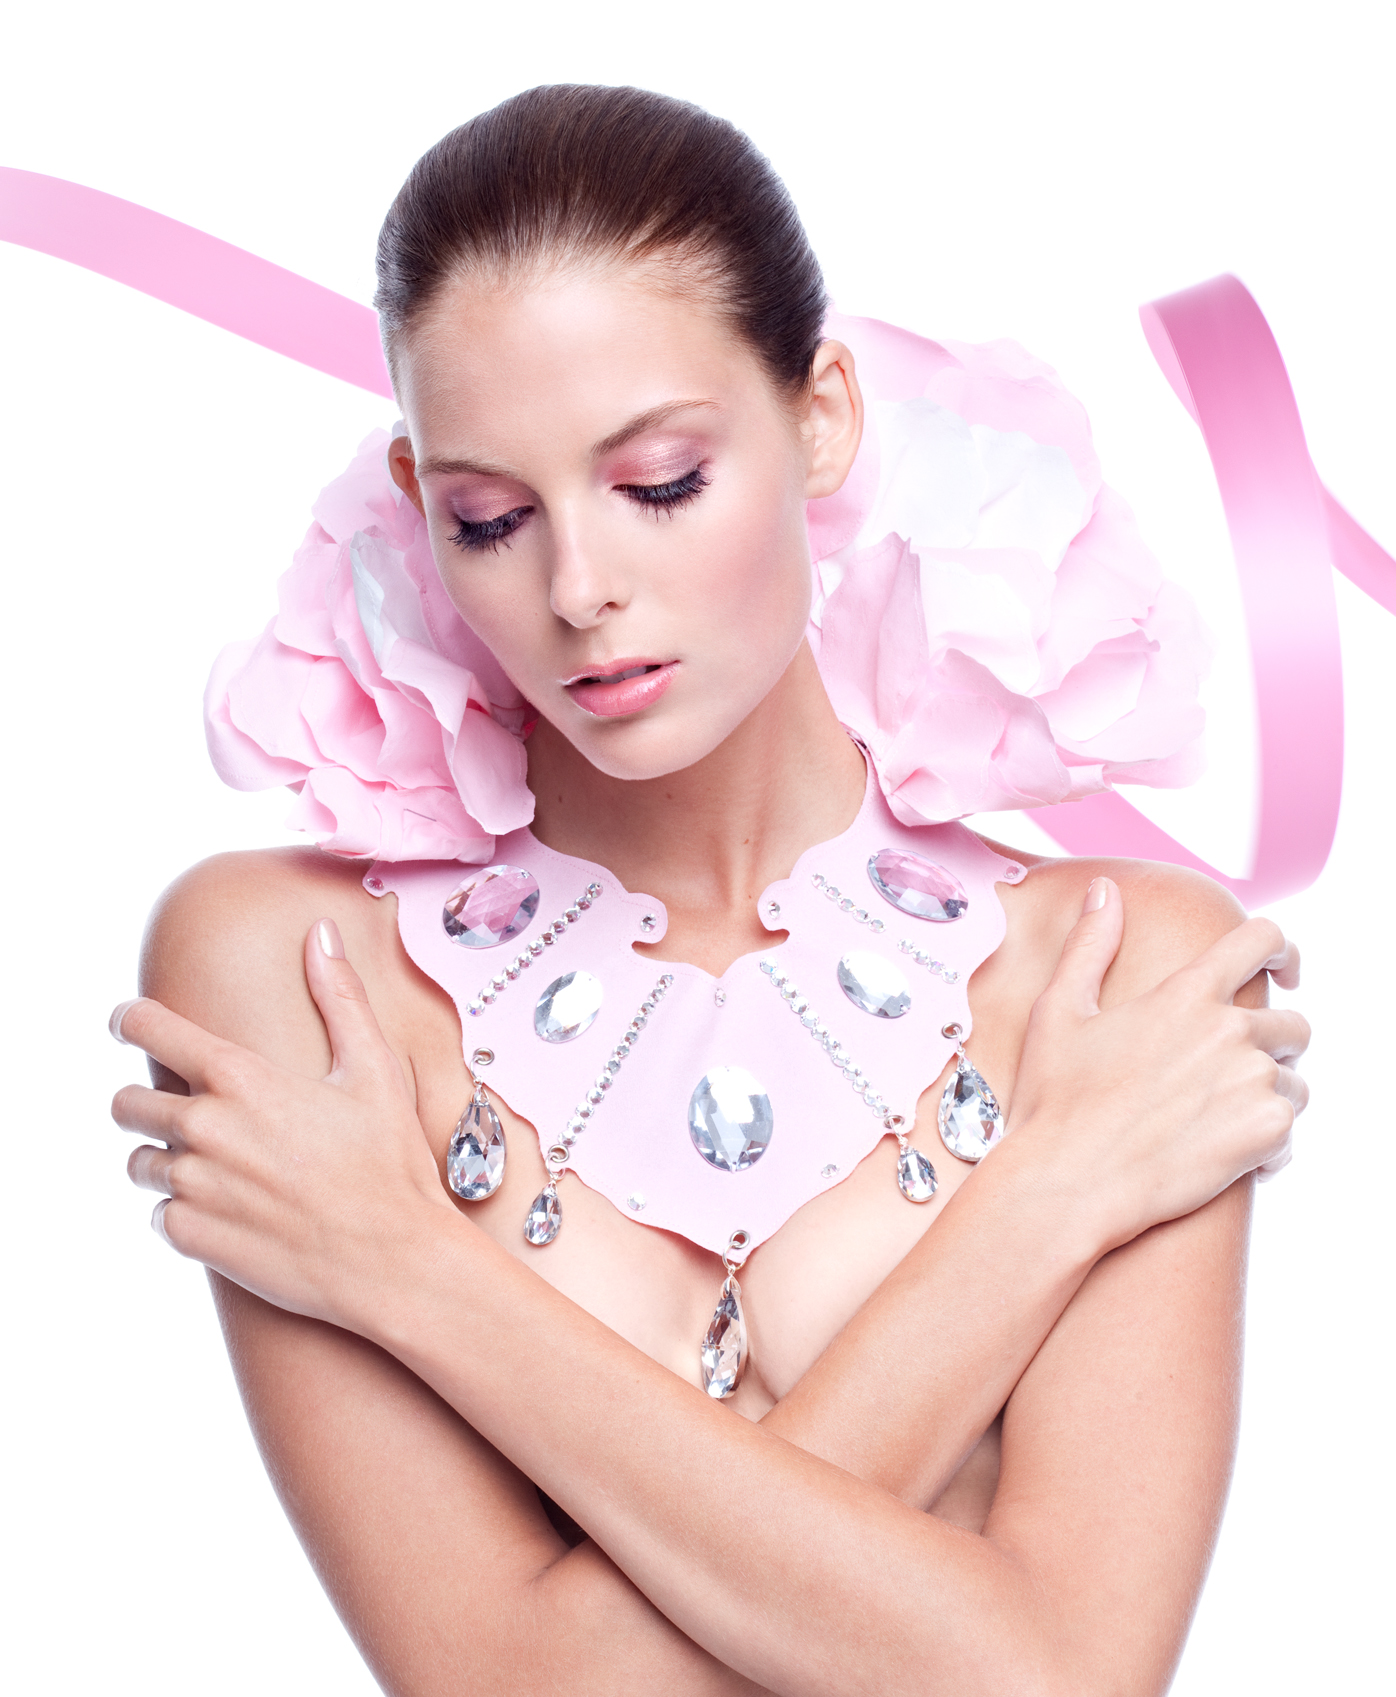 Shay Lowe Jewellery Design - White Cashmere Collection 2010.jpg